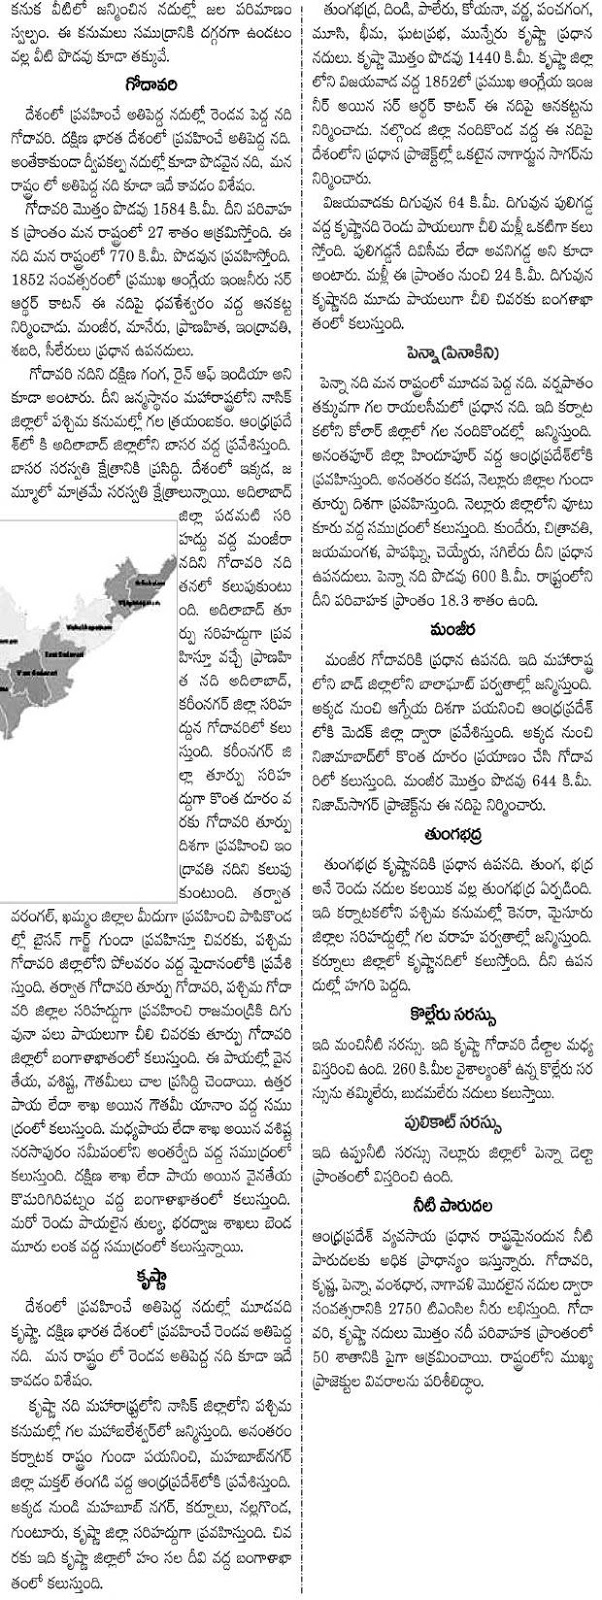 APPSC Notification, recruitment 2014, Material, Group 1 Notification 2014, blog, news, results, toppers, exam pattern, Group 2 Notification 2014, Preparation Plan, Jobs list, Pay scale,  New notifications 2014, General Studies, Group 1 Mains Material, Appsc material in Telugu Medium, free download, group 2 material in Telugu free download, group 4 study material in Telugu free download, appsc jobs, Government Jobs in Andhra Pradesh, appsc latest recent notifications, Andhra Pradesh Public Service Commission Interview questions.